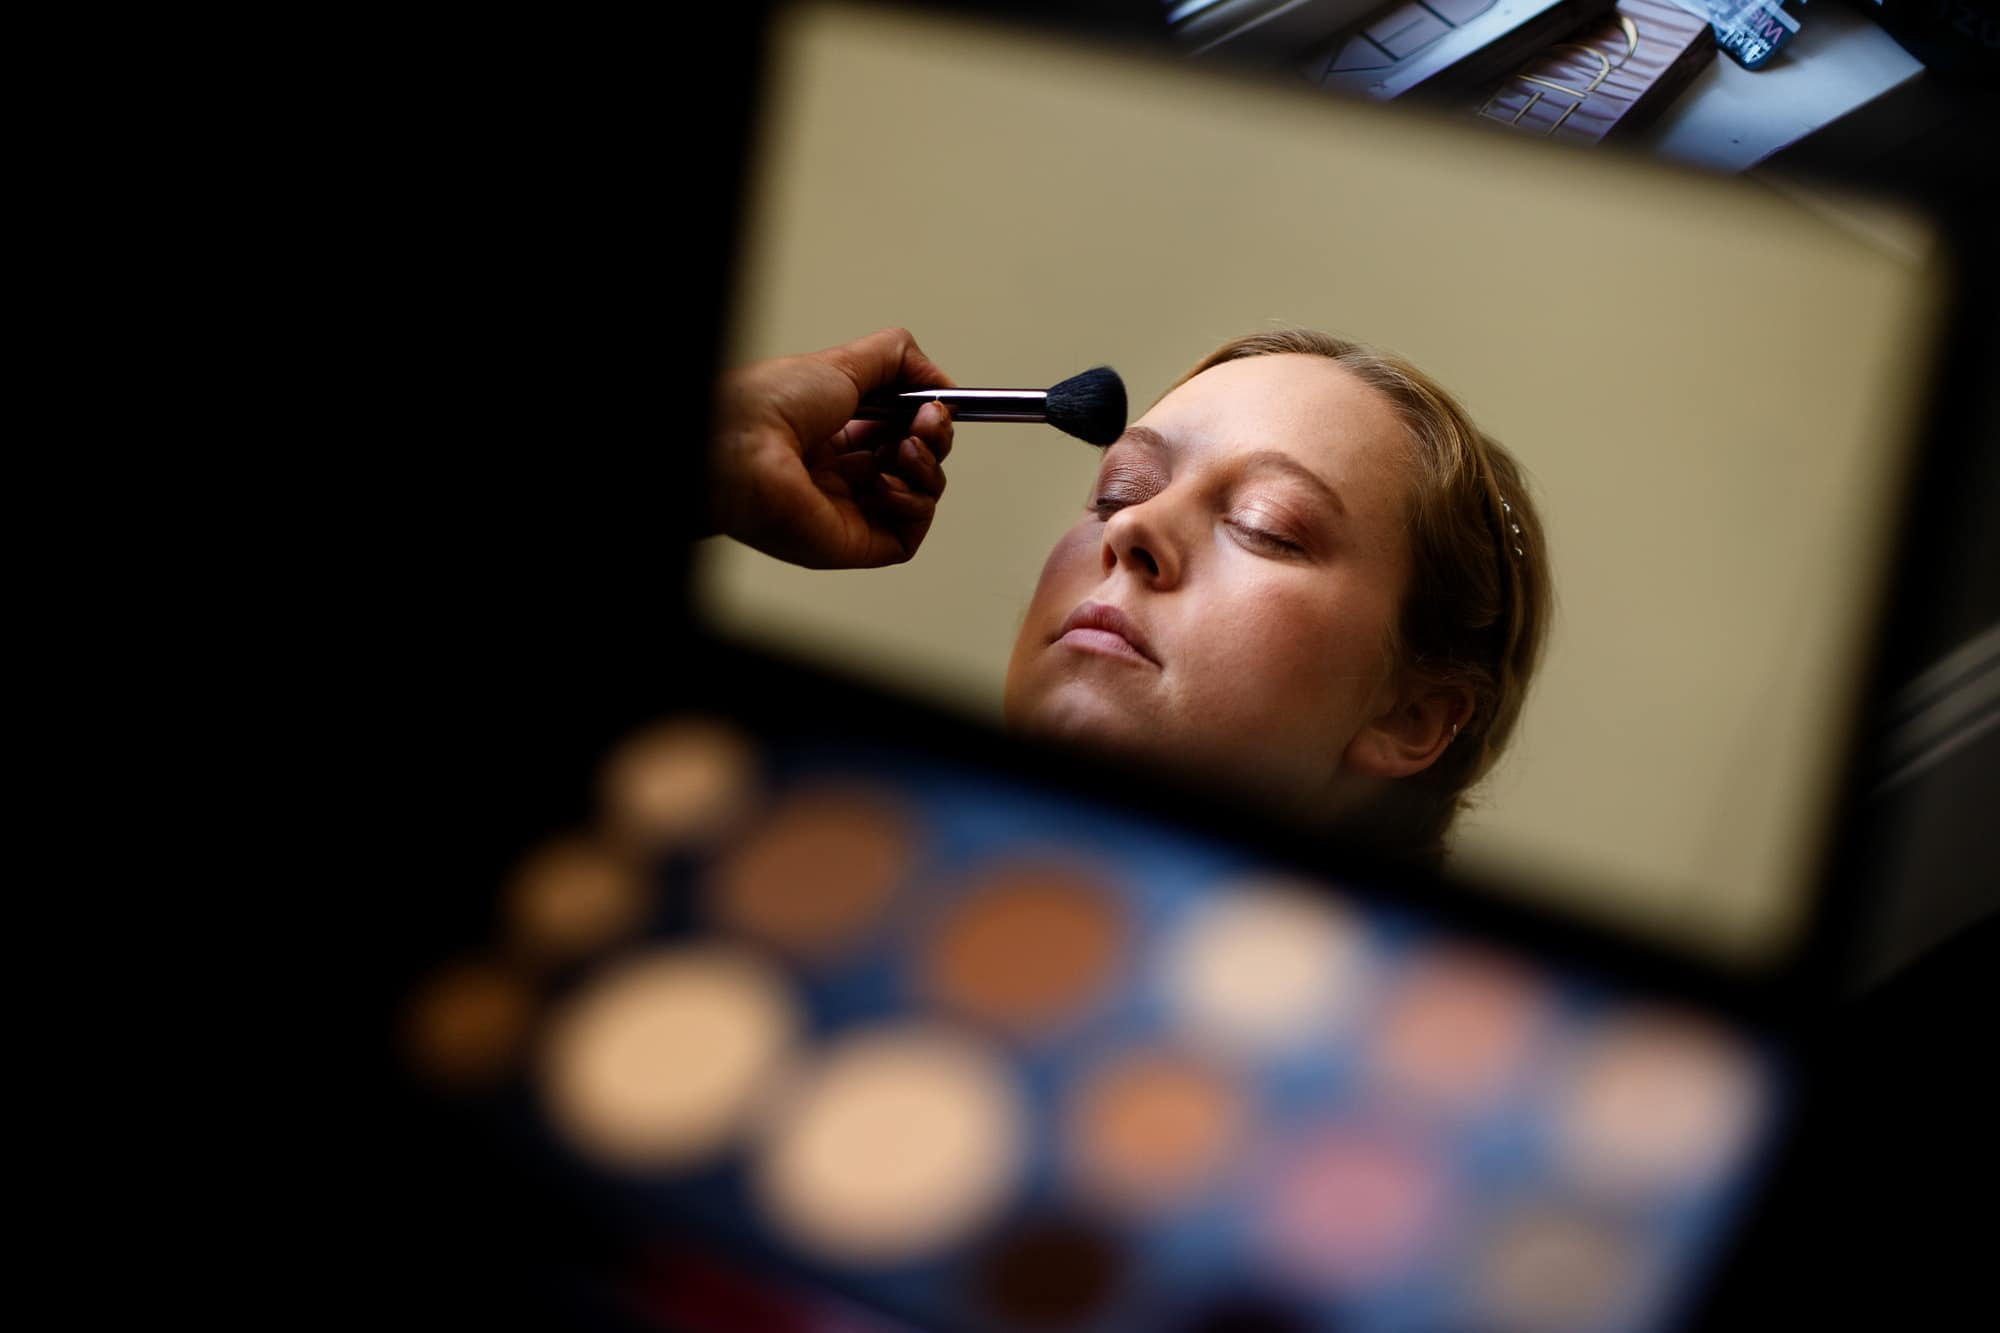 Bride reflected in a compact mirror while getting ready